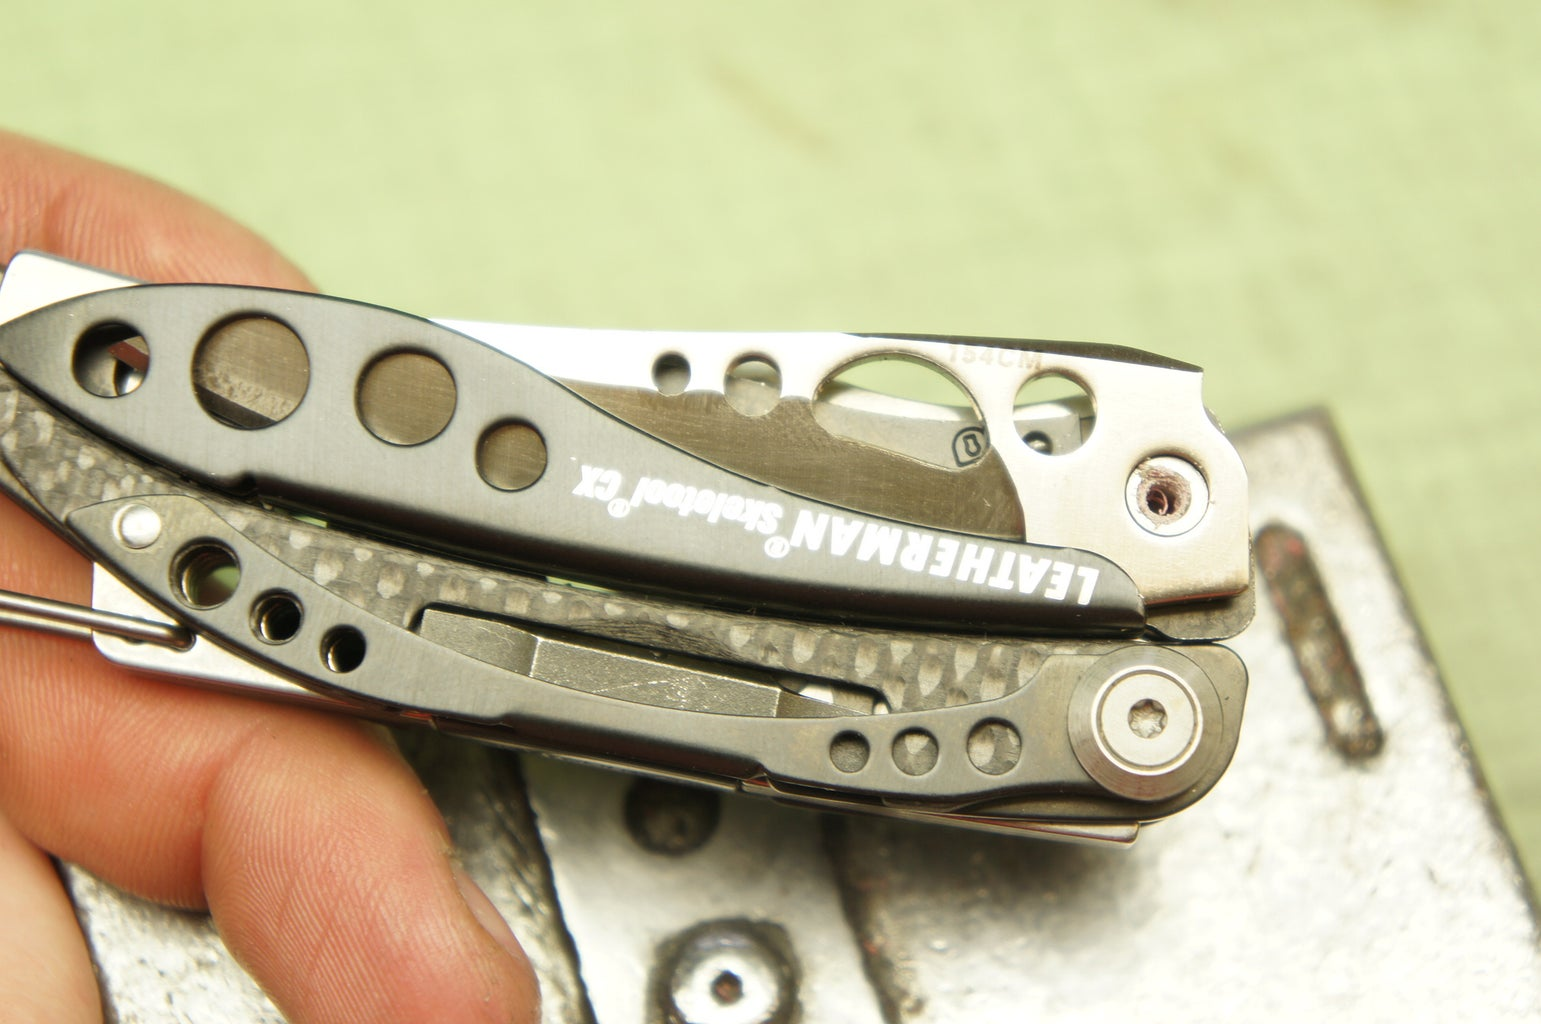 Flip the Tool Over and Remove the Top Screw